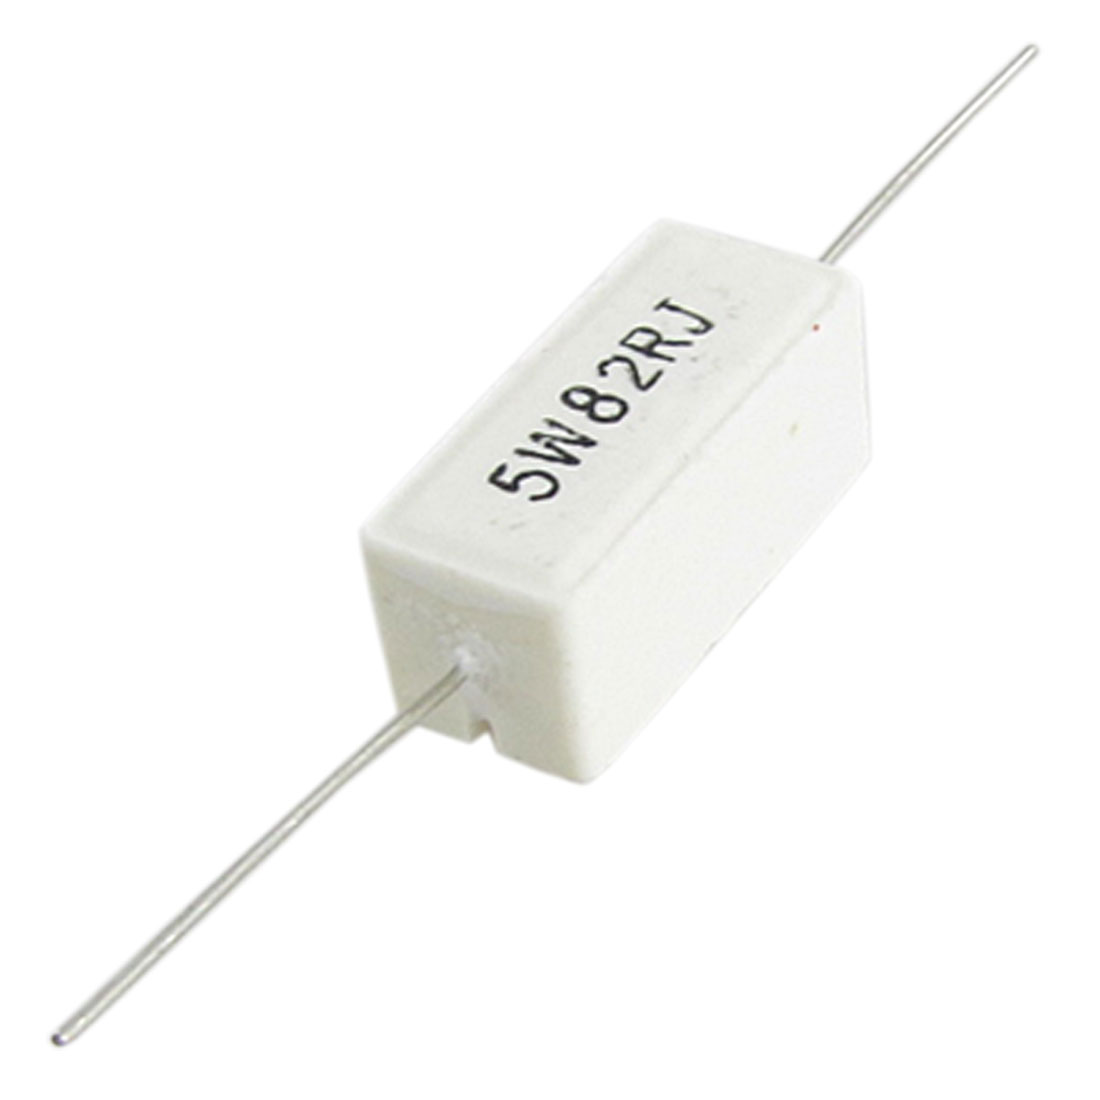 10 Pcs 5W Watt Fixed Cement Power Resistors 82 Ohm 5%